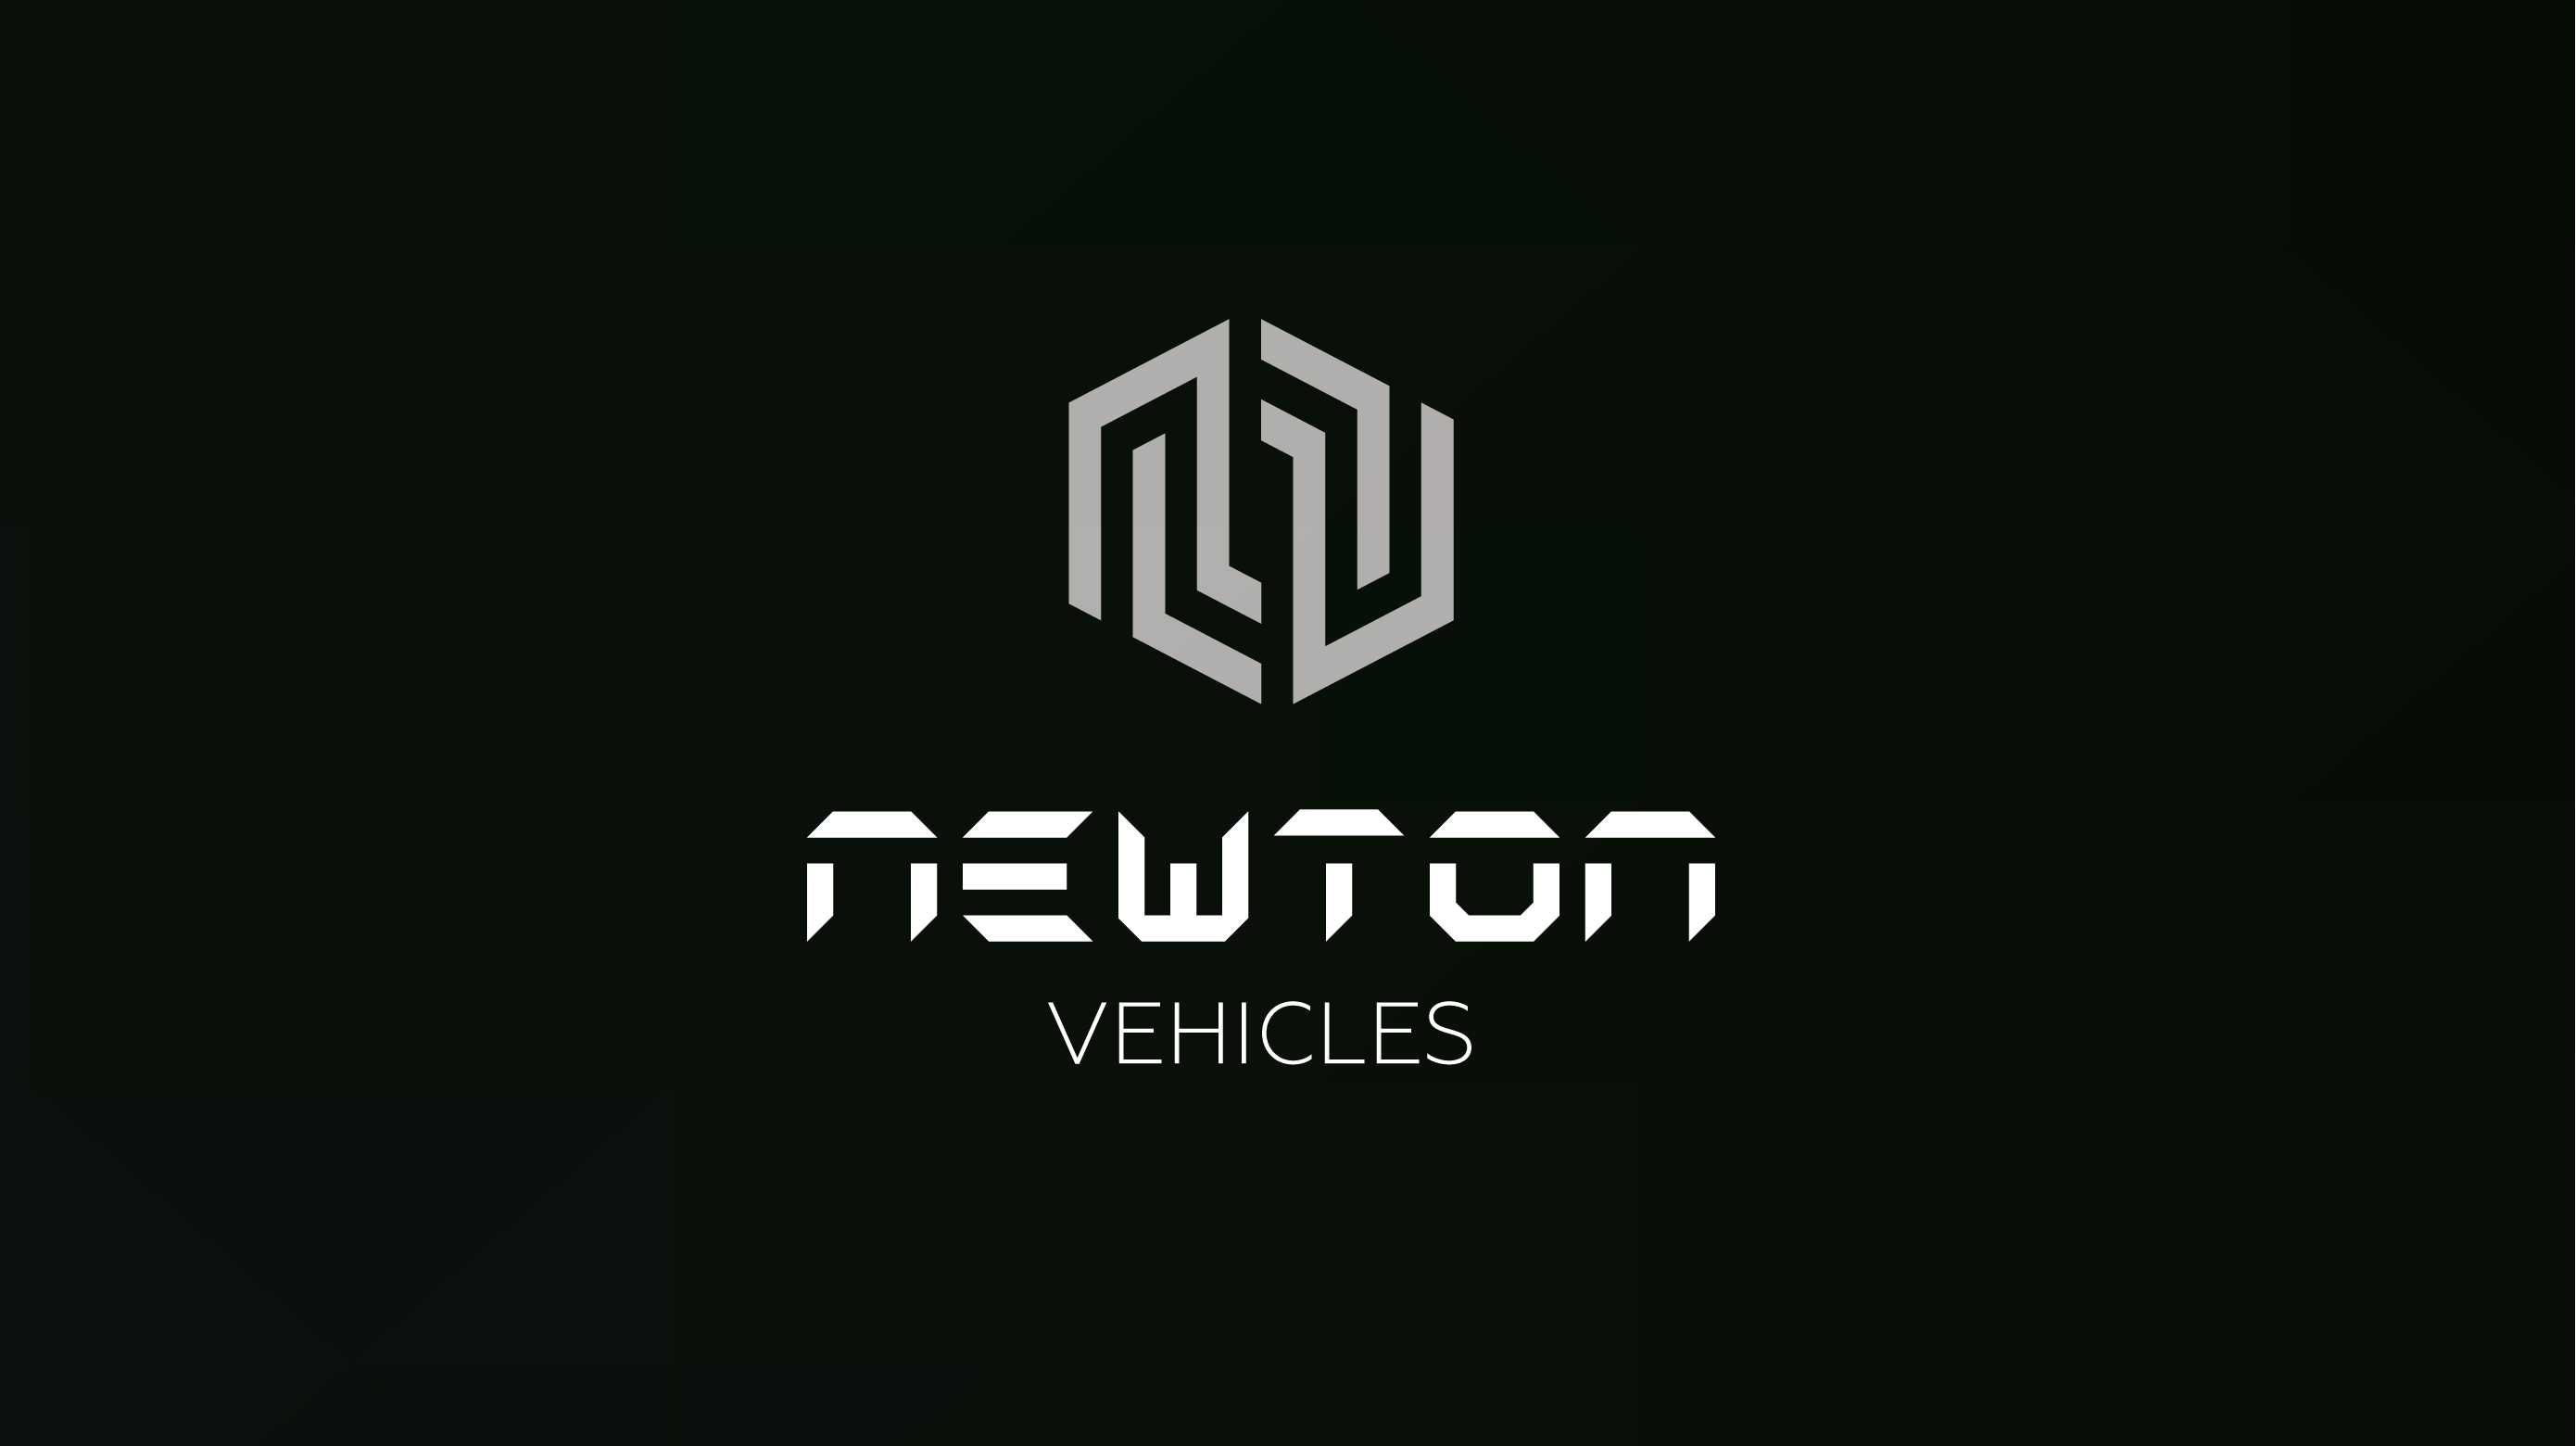 Newton Vehicles Website